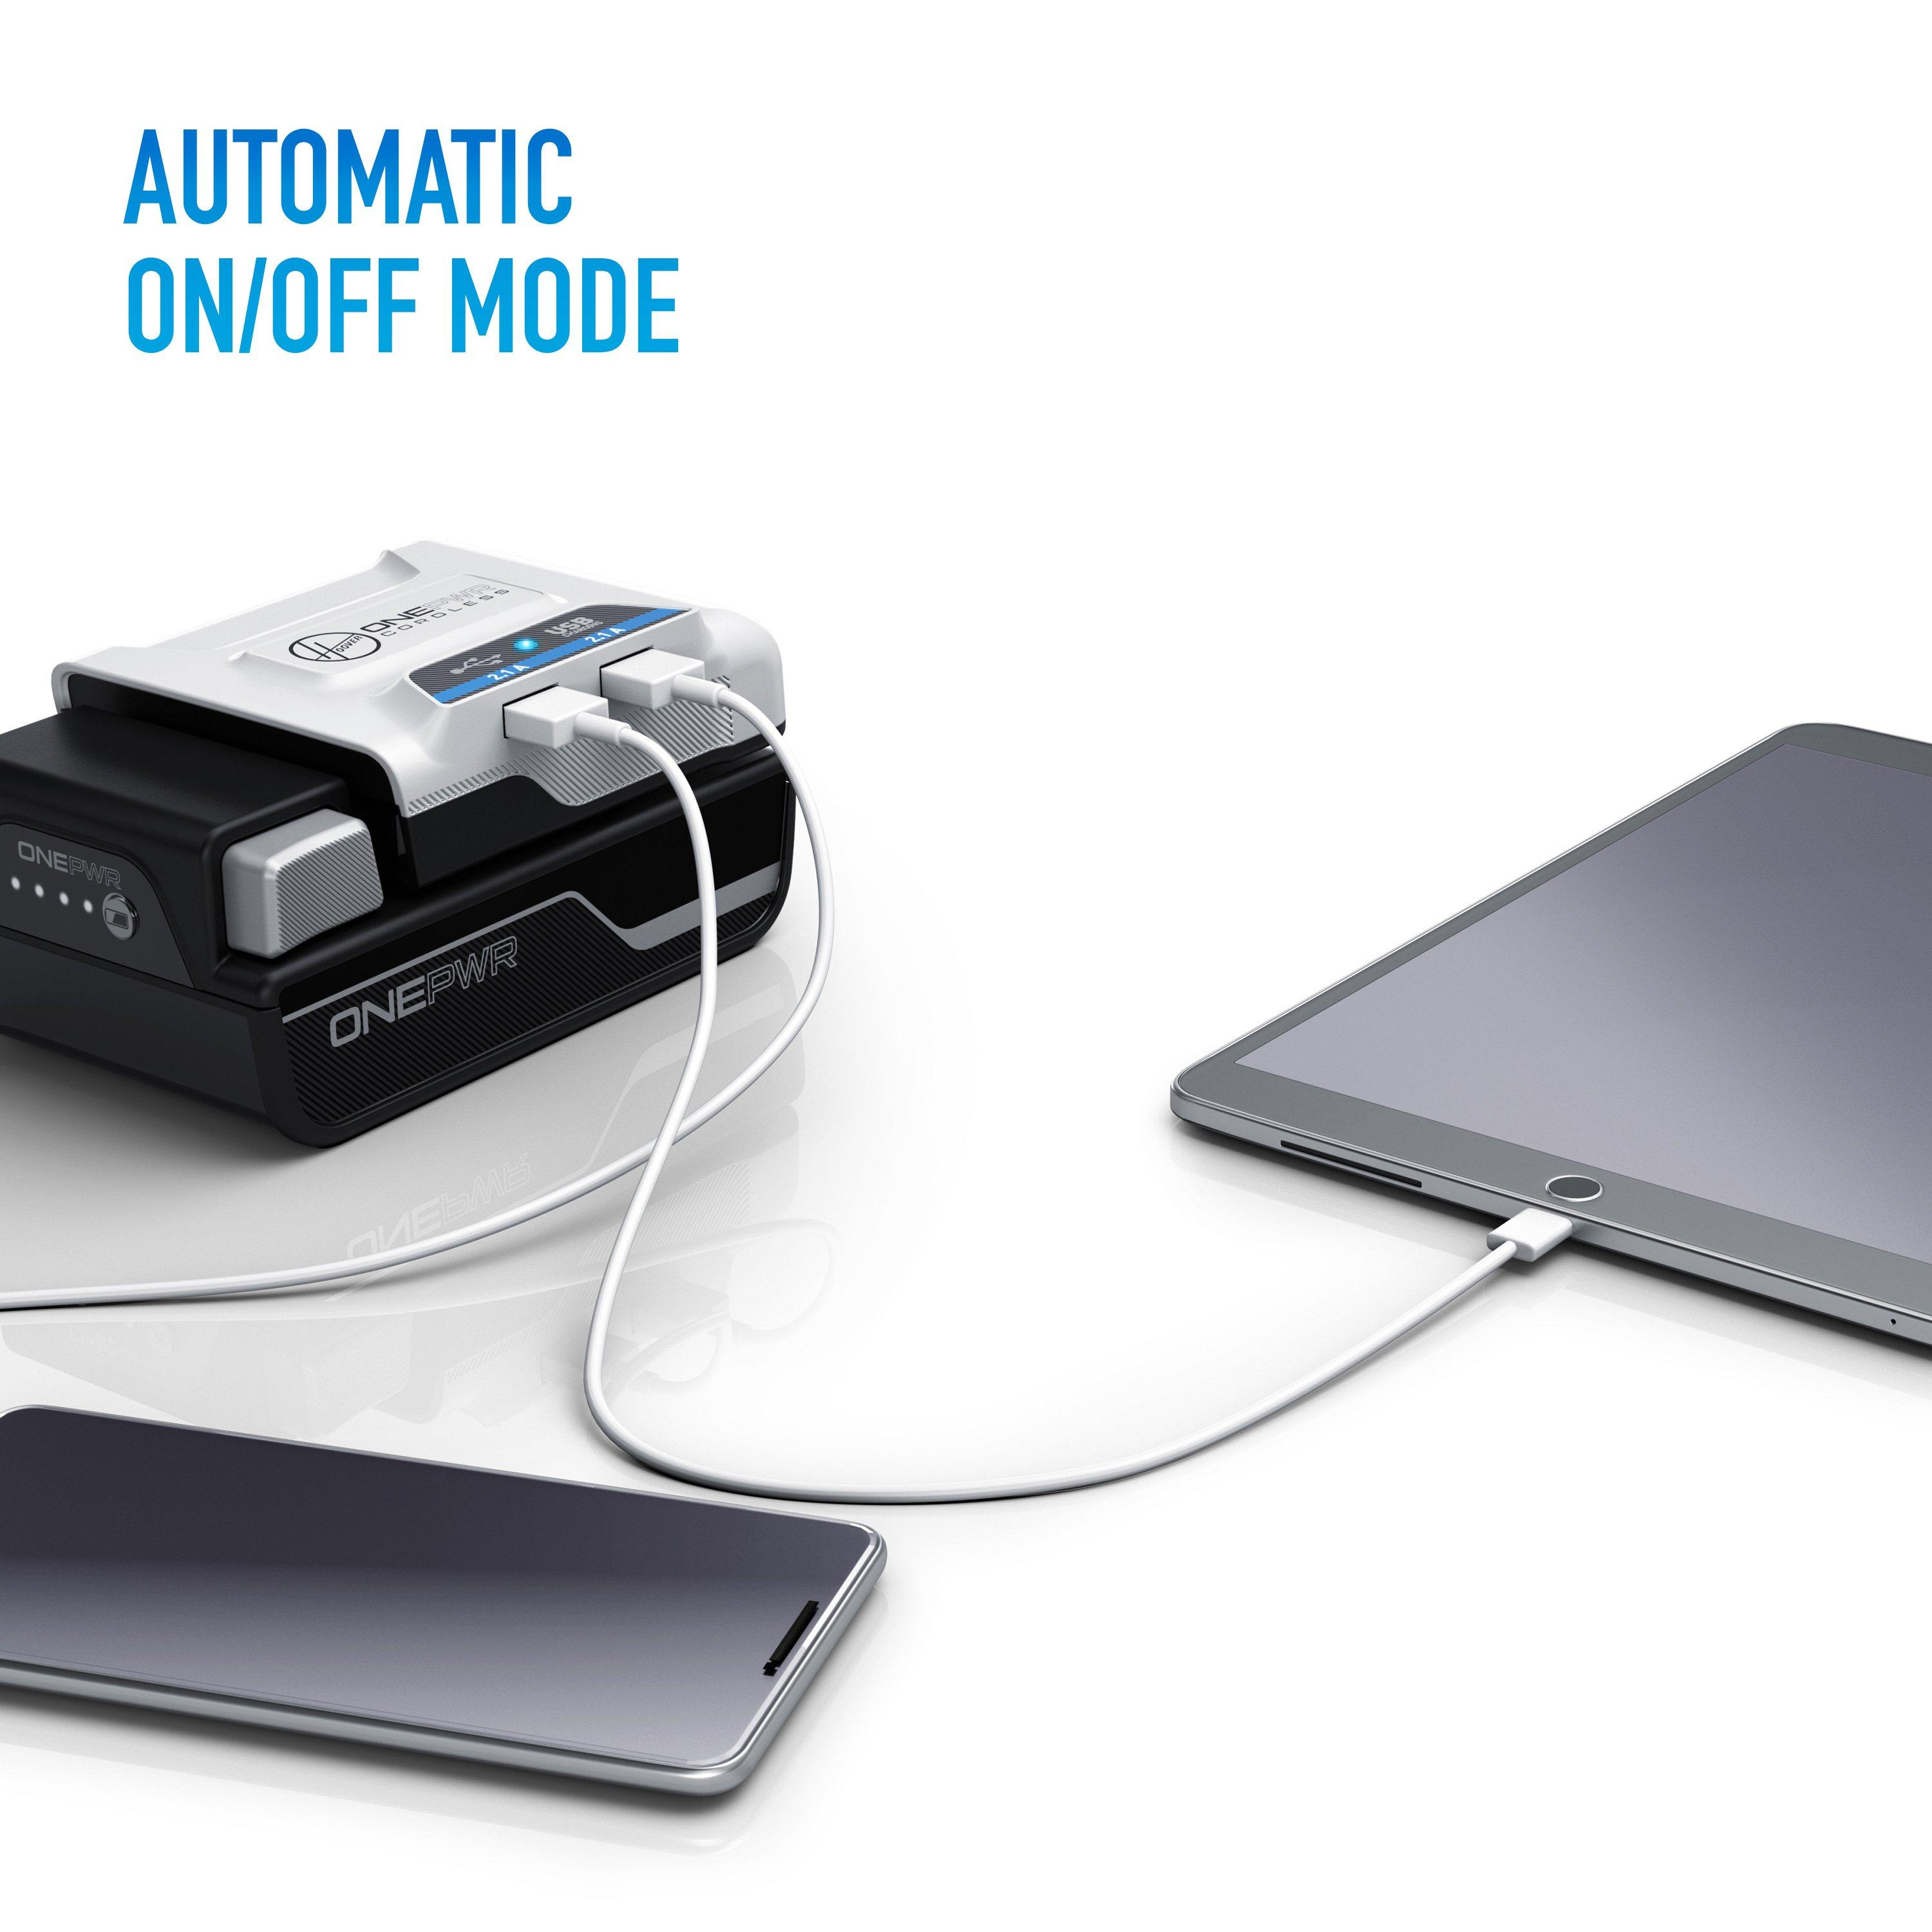 ONEPWR Cordless Dual USB Charger7